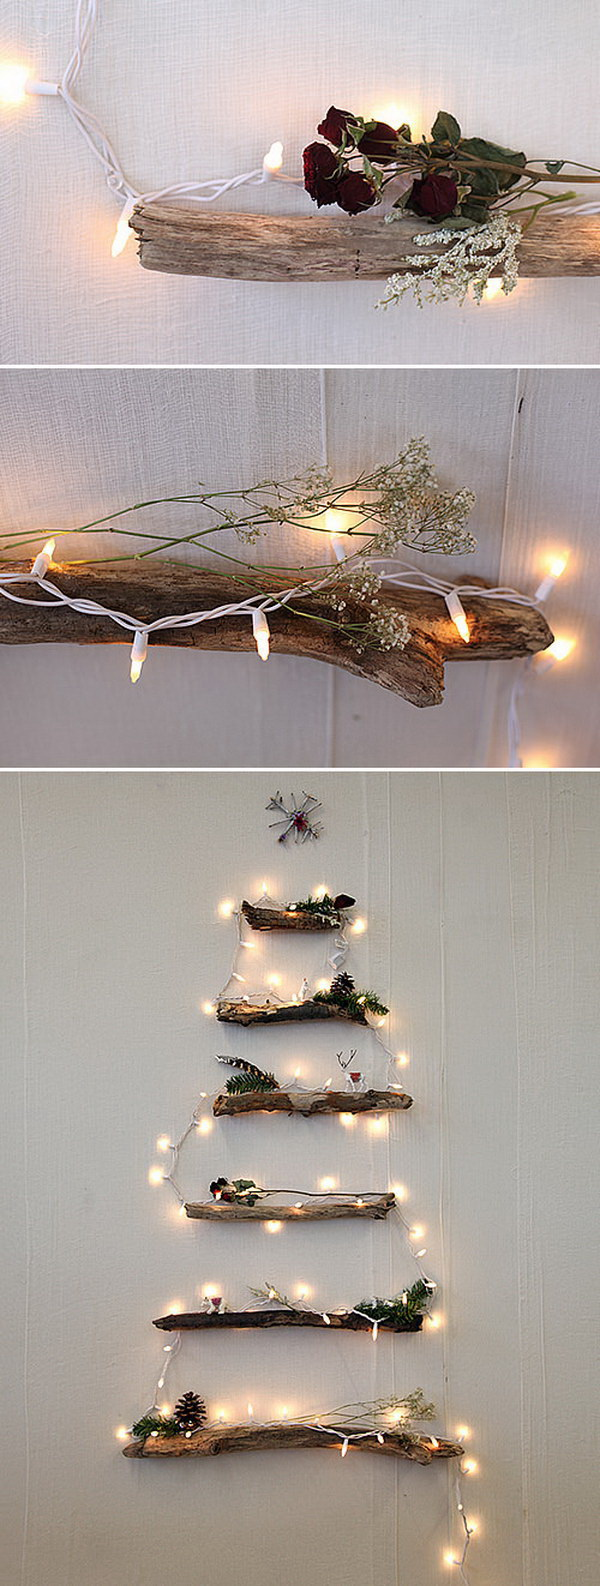 45 Cool Diy Rustic Christmas Decoration Ideas Tutorials For Creative Juice